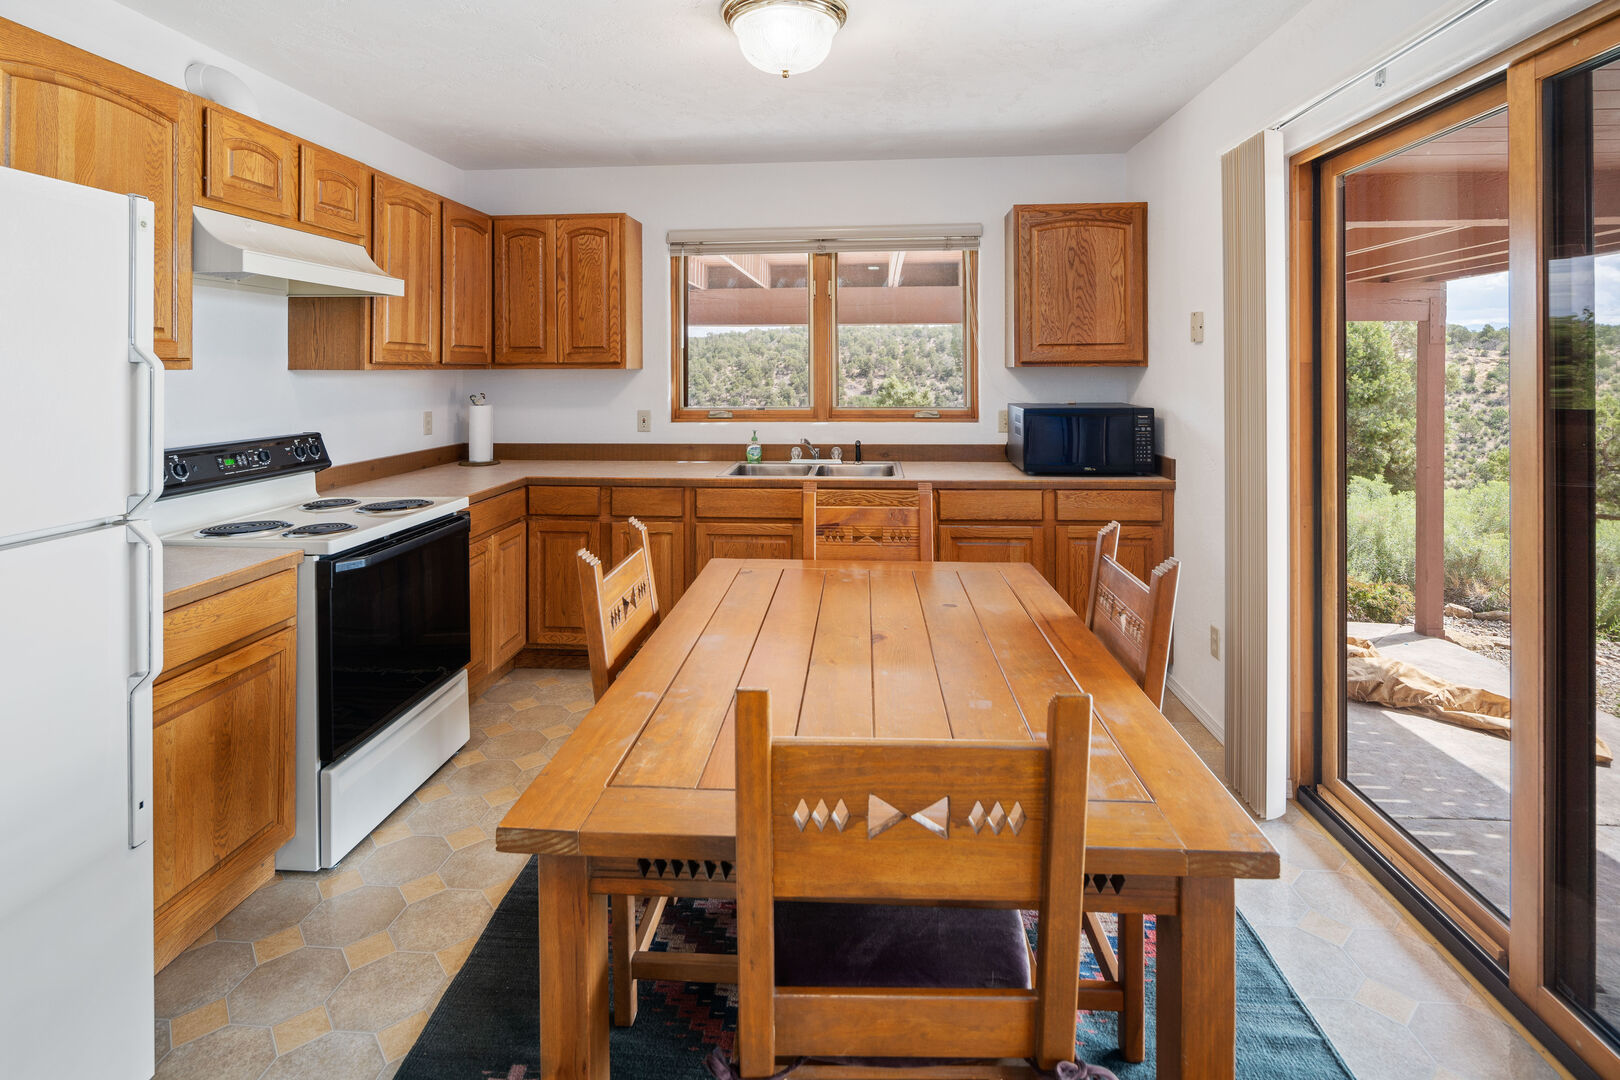 Small kitchen  - lower level